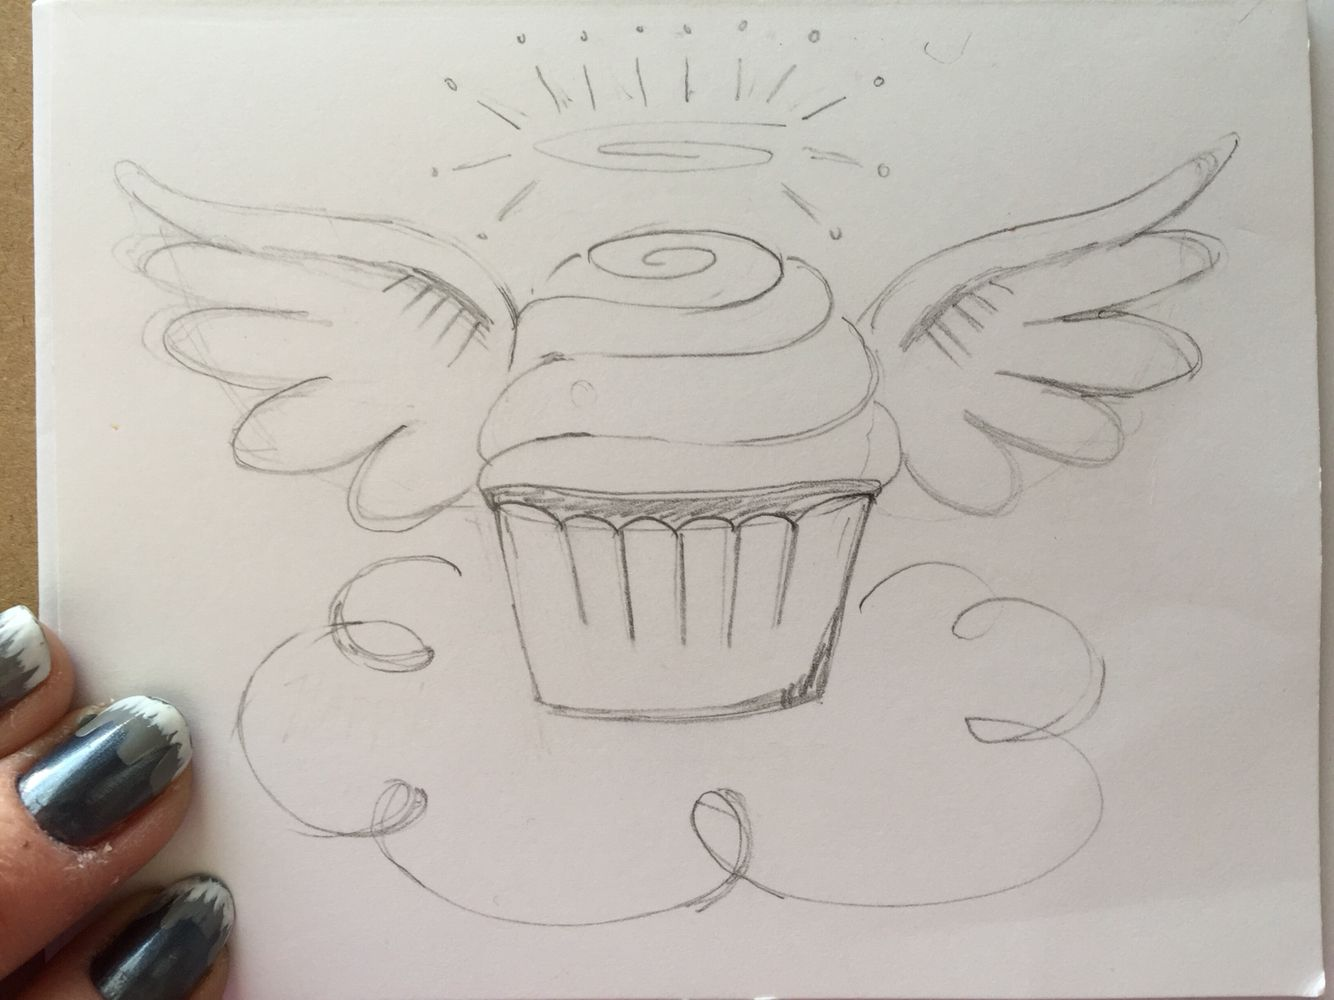 Pencil sketch angel cupcake for front of birthday card